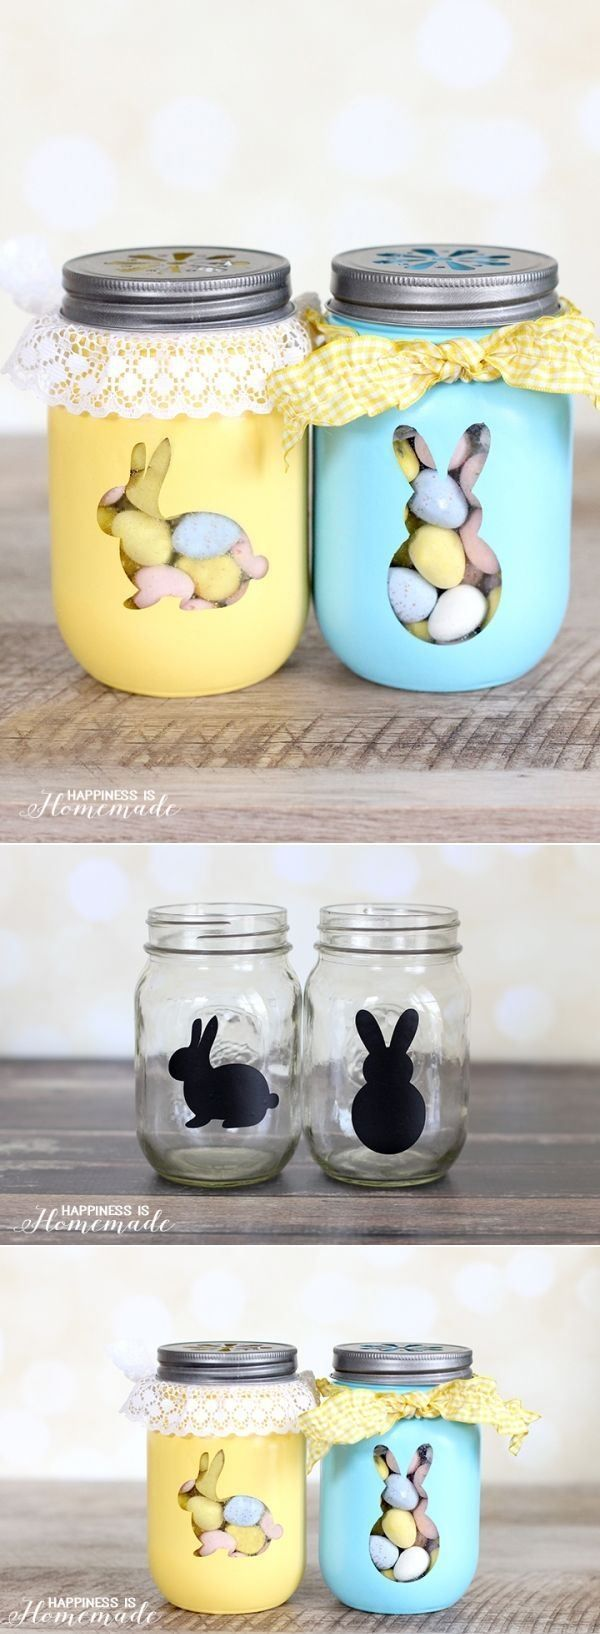 1000+ images about Easter & Kids on Pinterest | Peeps, Bunnies and ...